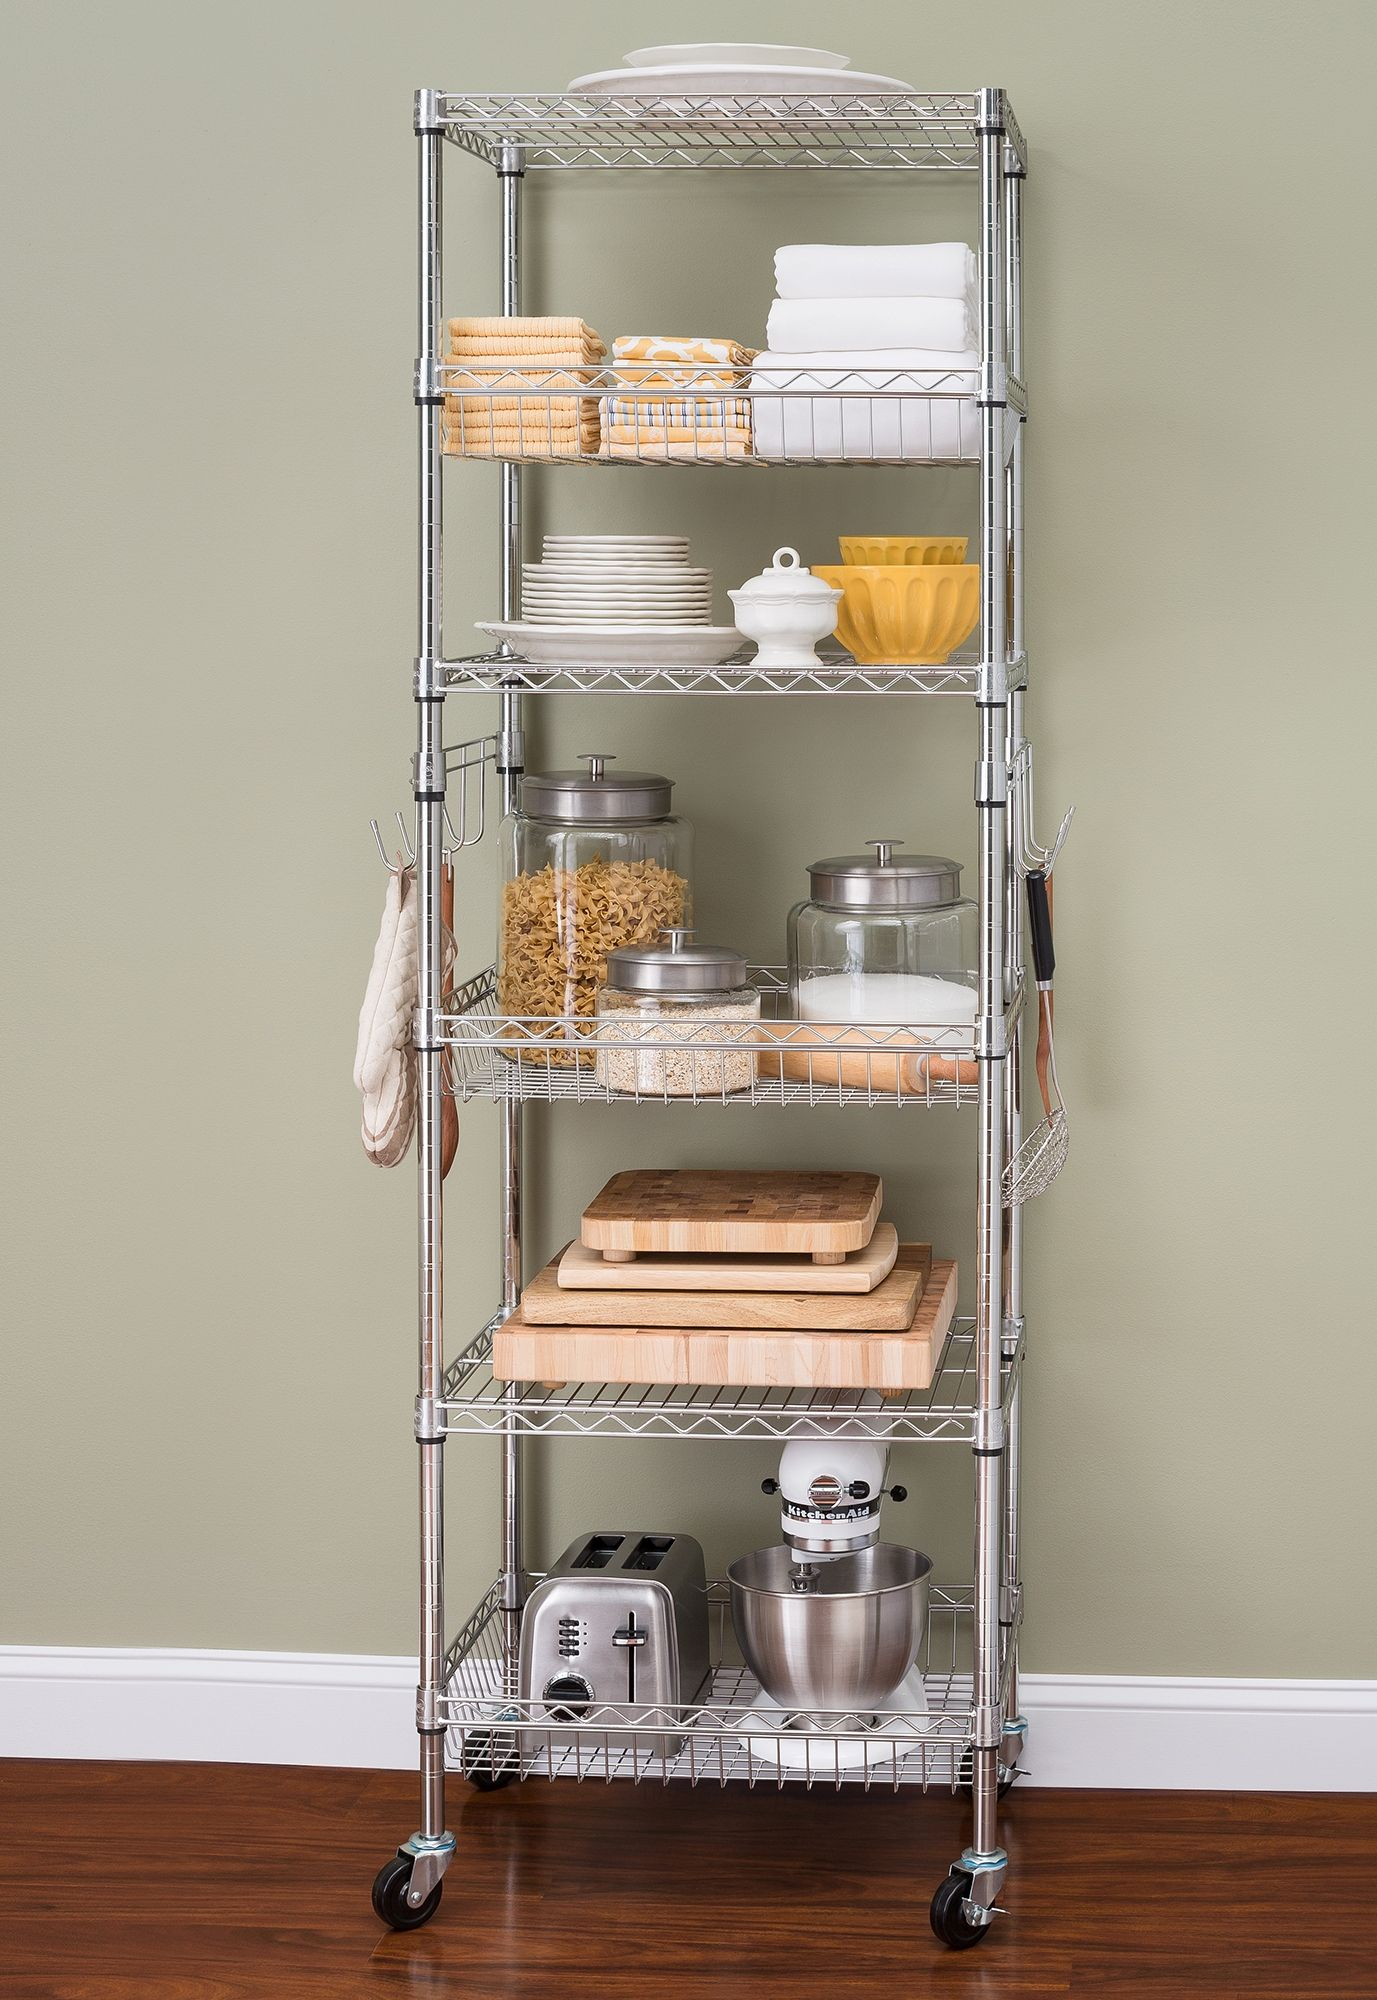 Hss 6 Tier Wire Shelving Tower Rack With Casters And Shelf Liners 18 Dx24 Wx75 H Chrome Walmart Com Kitchen Appliance Storage Appliances Storage Kitchen Rack